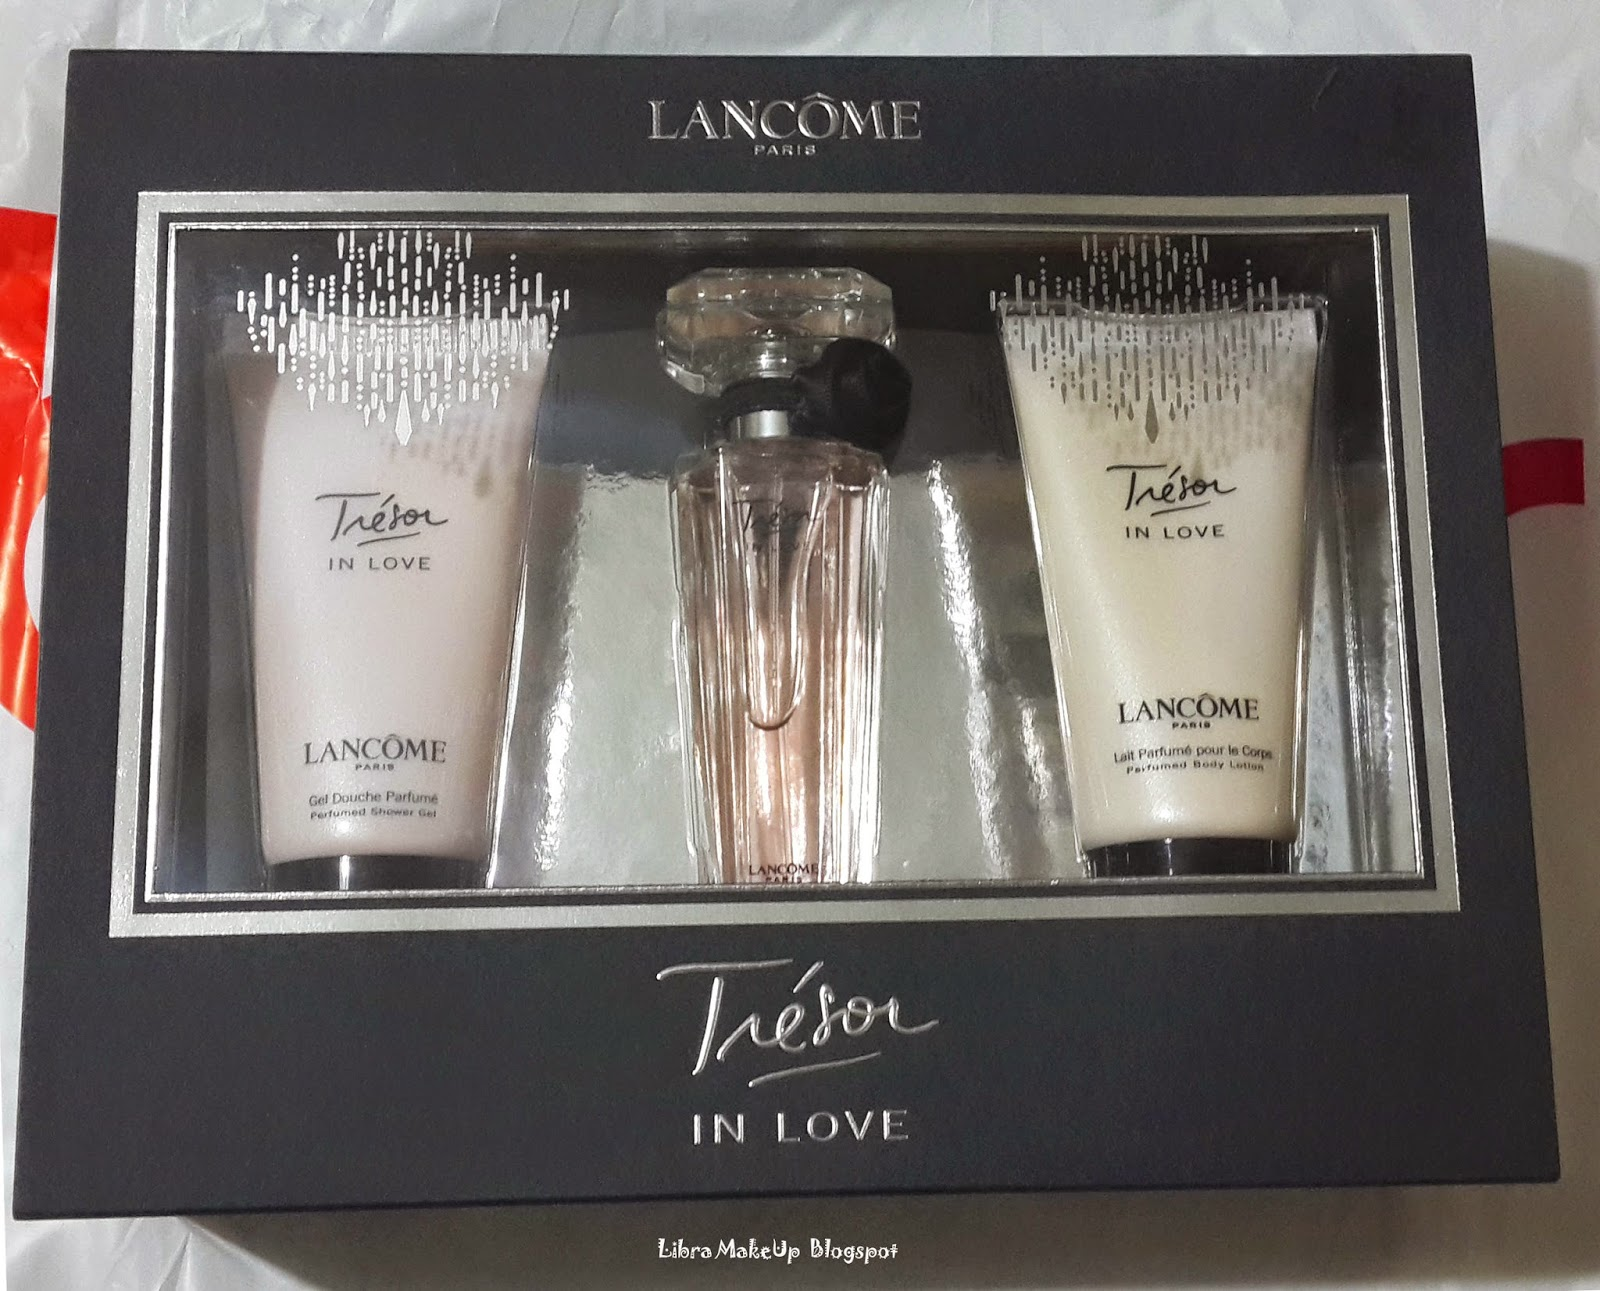 tresor in love body lotion, lancome tresor in love duş jeli, parfum lancome, parfume,